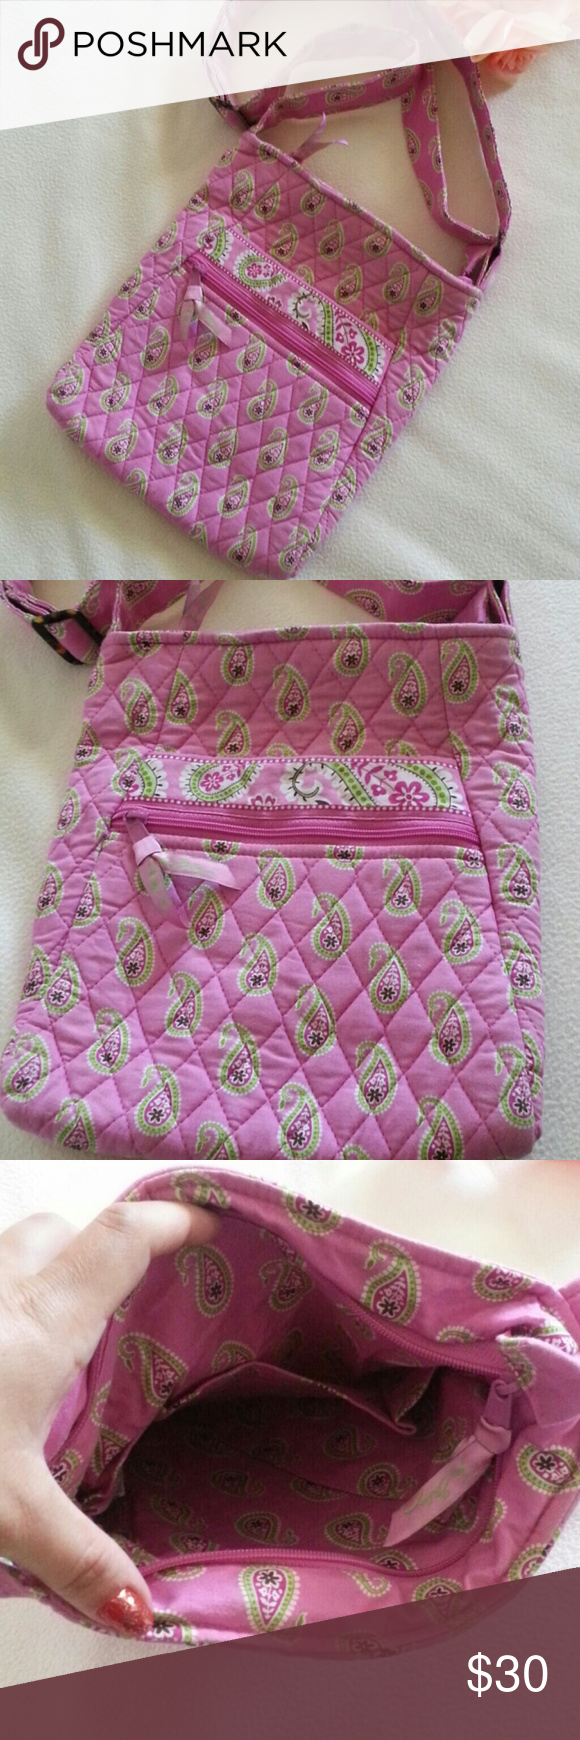 "Vera Bradley Crossbody Pink Very good condition 10"" x 9.5"" x 1"" Adjustable strap Pink color Vera Bradley Bags Crossbody Bags"